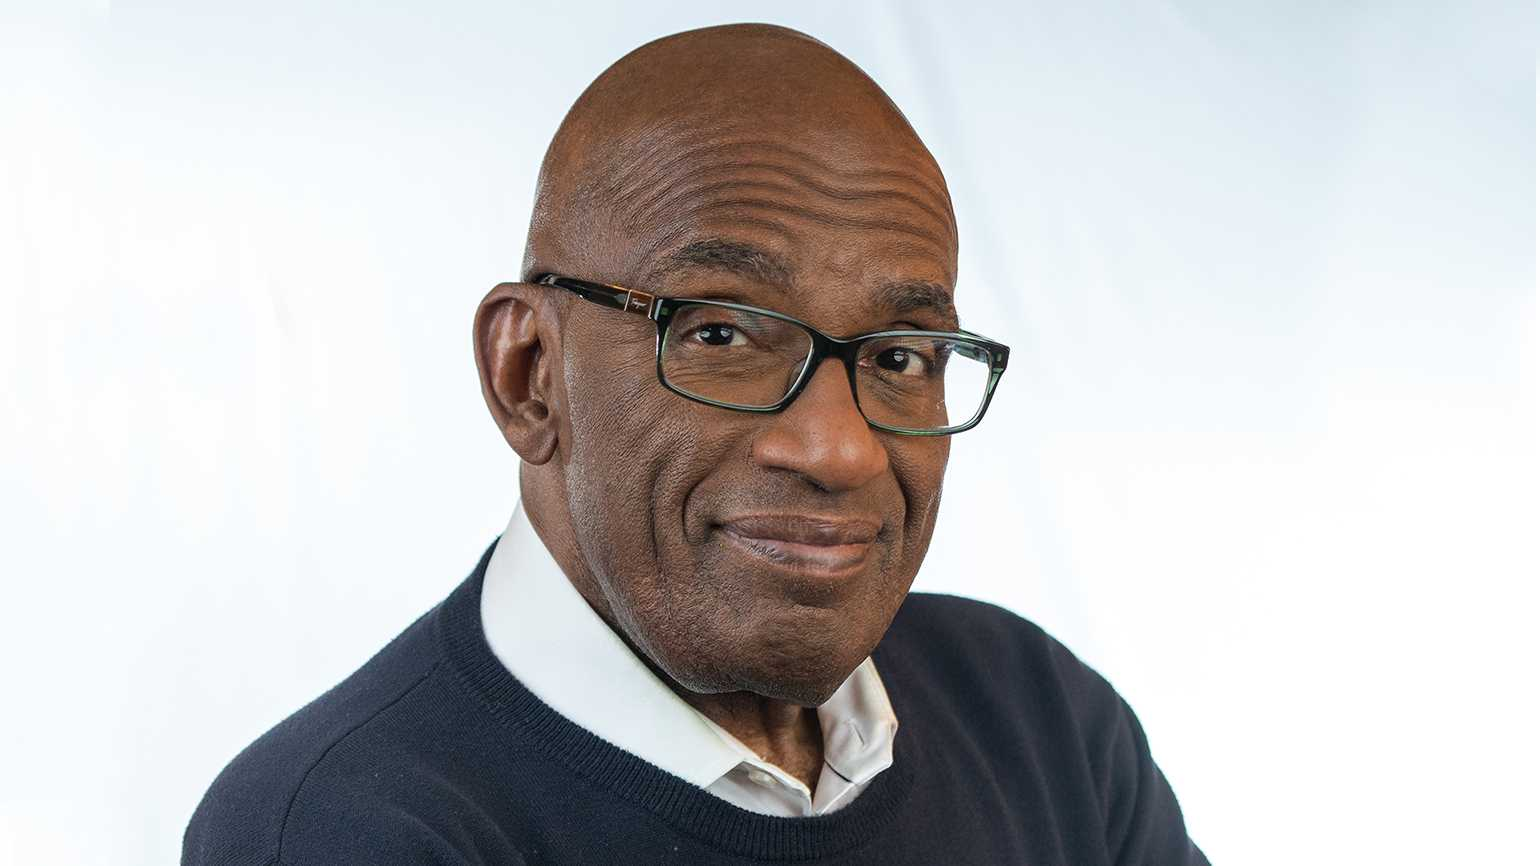 Author and TV personality Al Roker